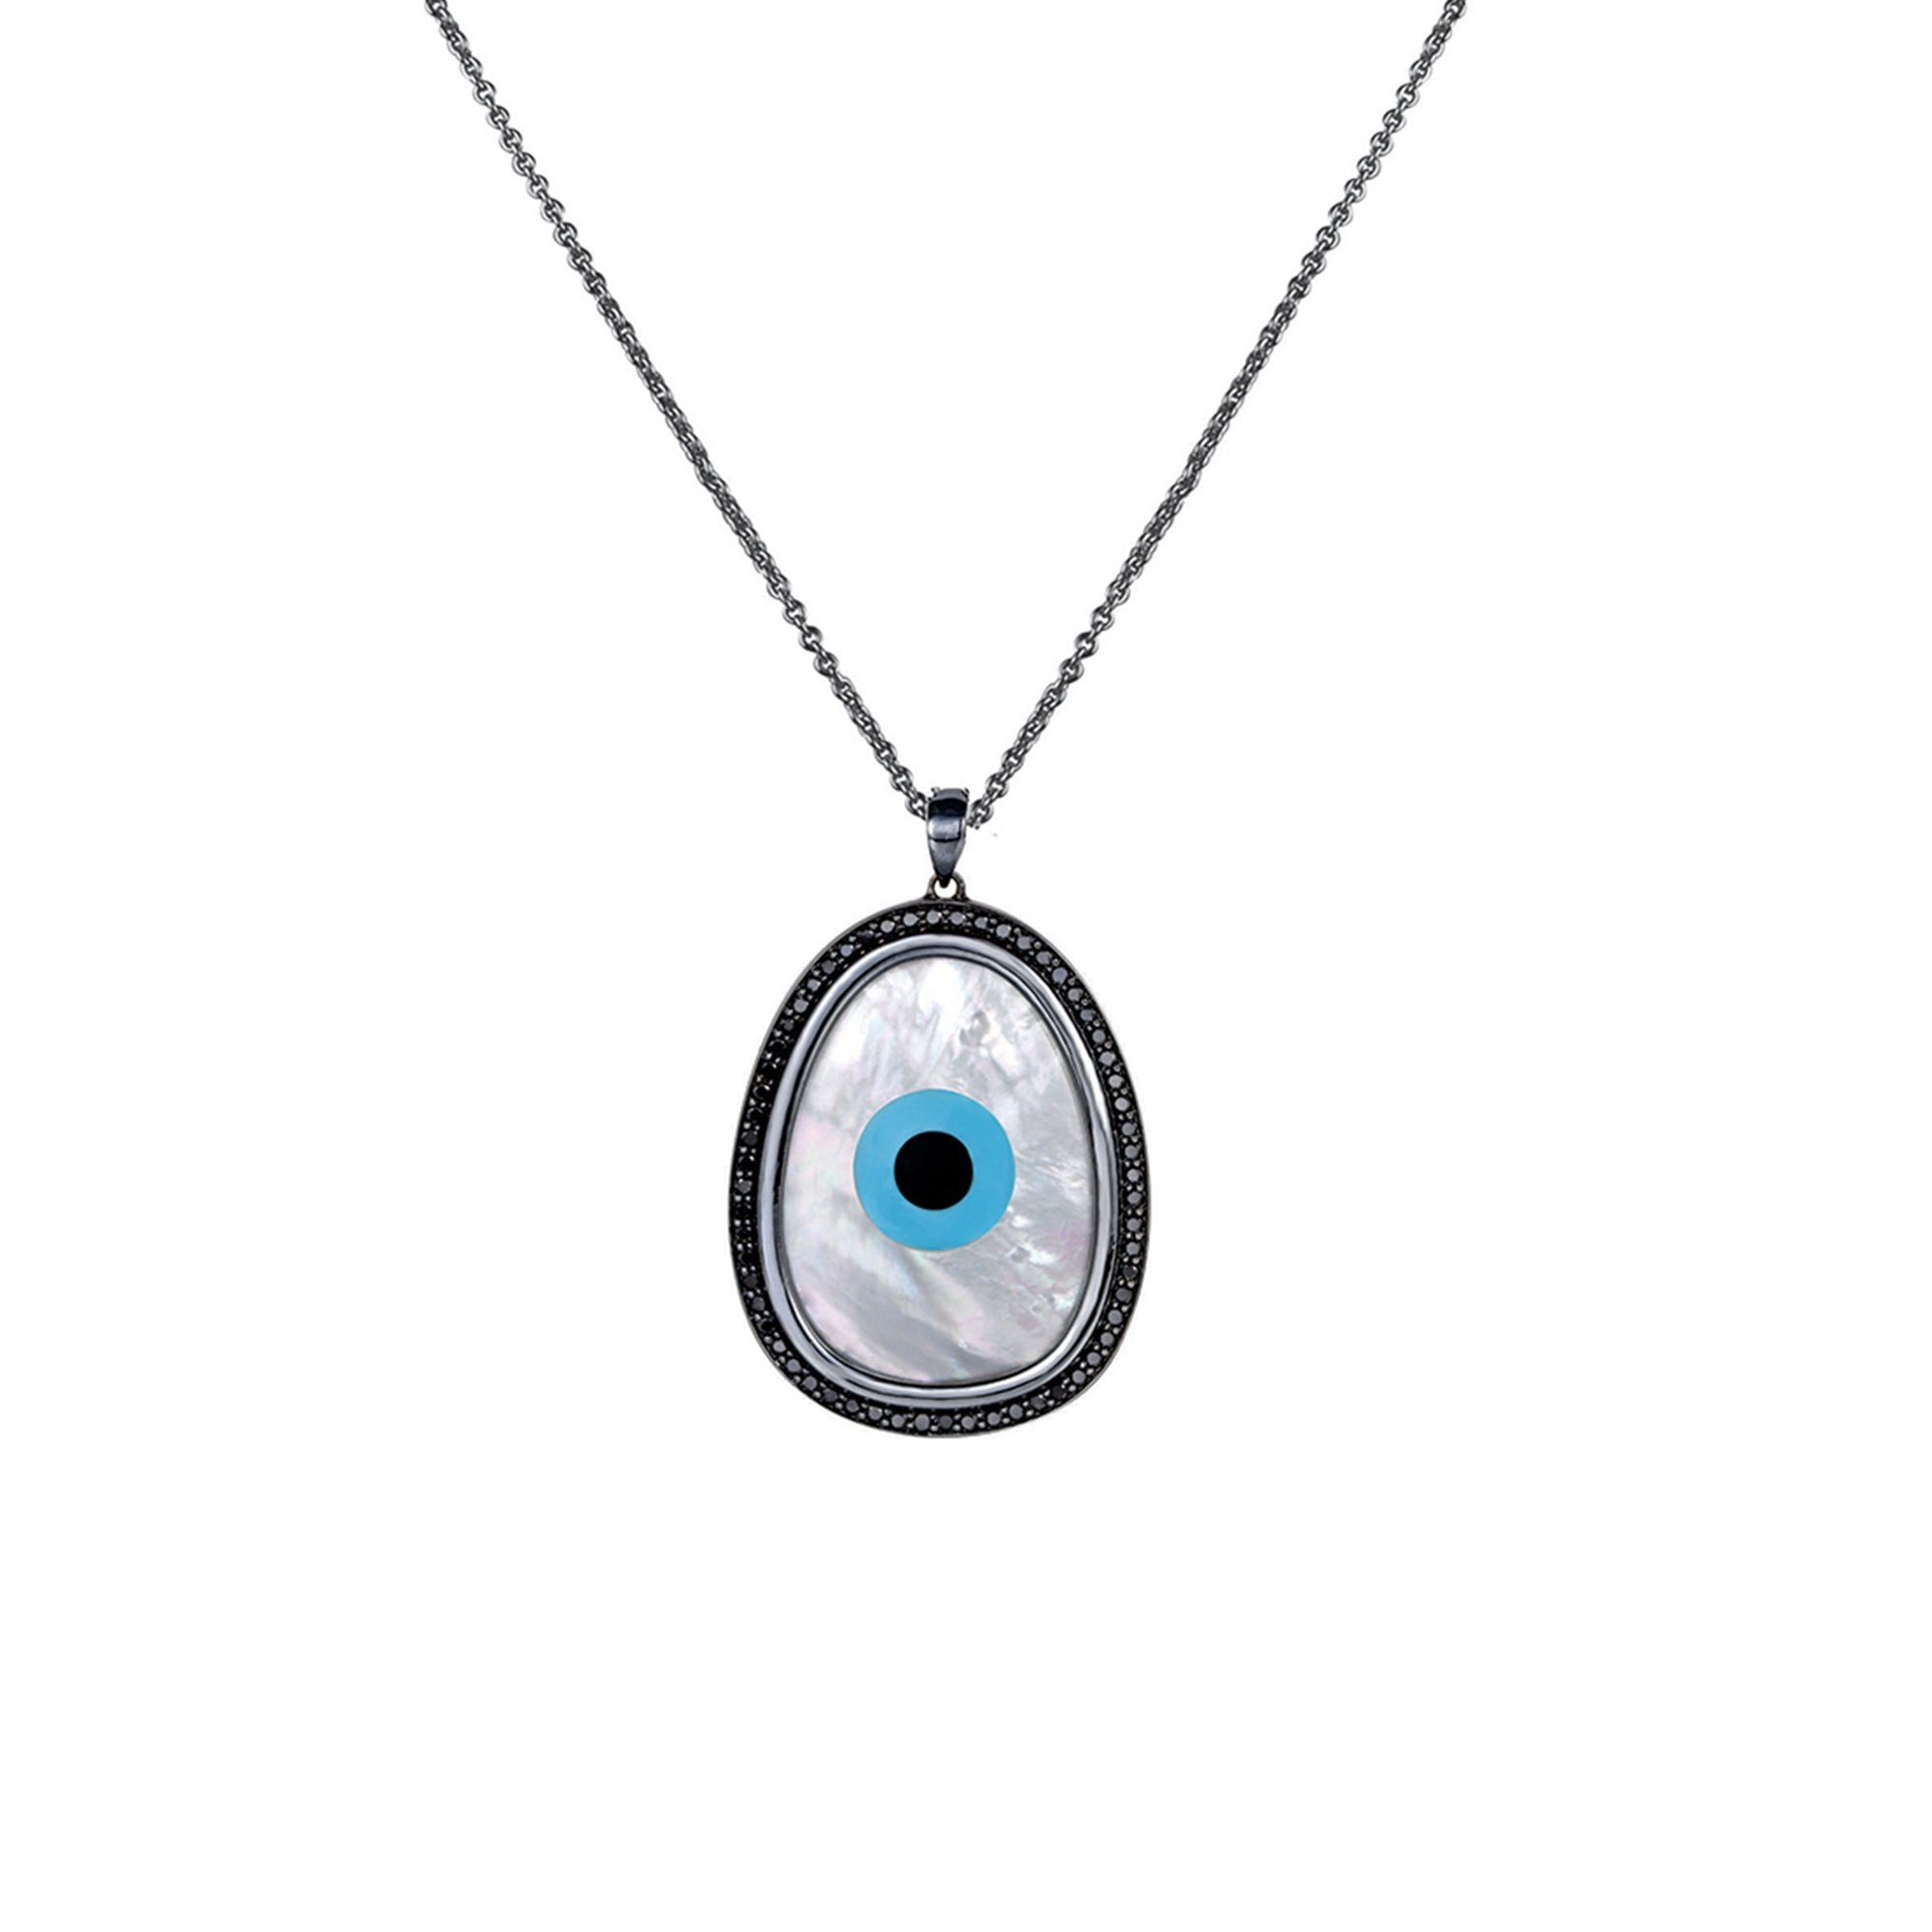 Oblong Evil Eye Black Diamond Chain Pendant